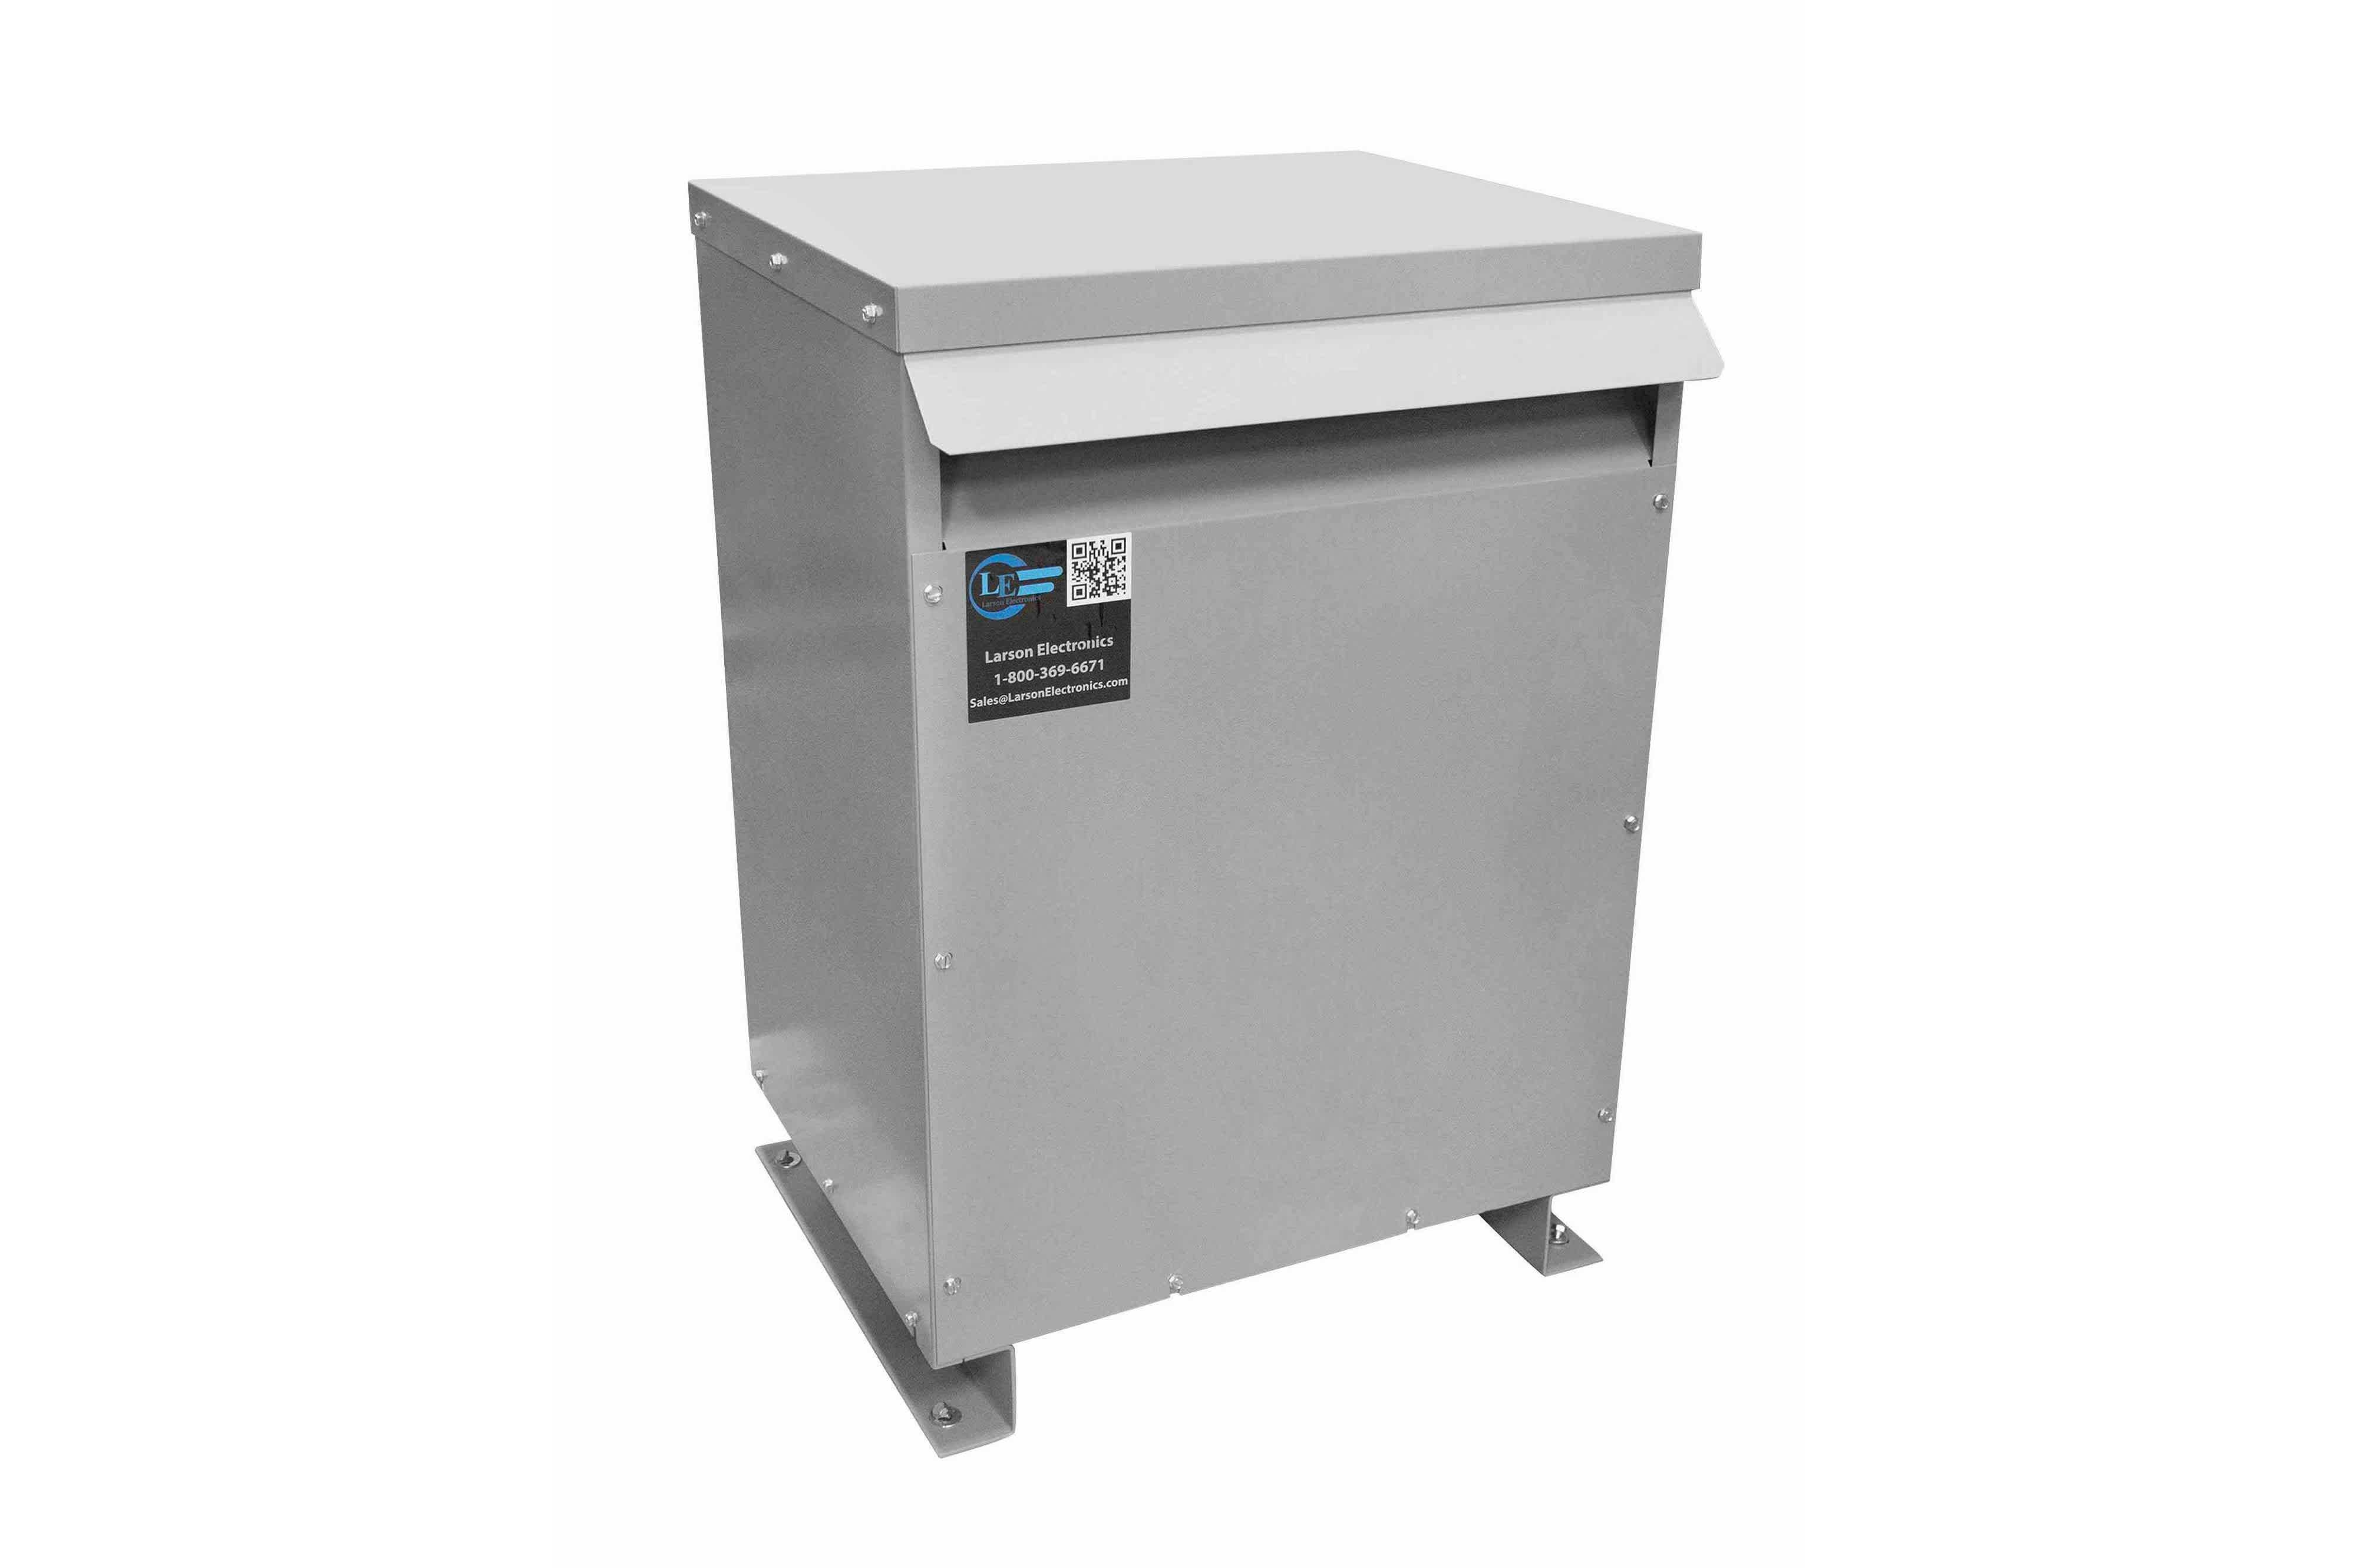 275 kVA 3PH Isolation Transformer, 415V Delta Primary, 480V Delta Secondary, N3R, Ventilated, 60 Hz